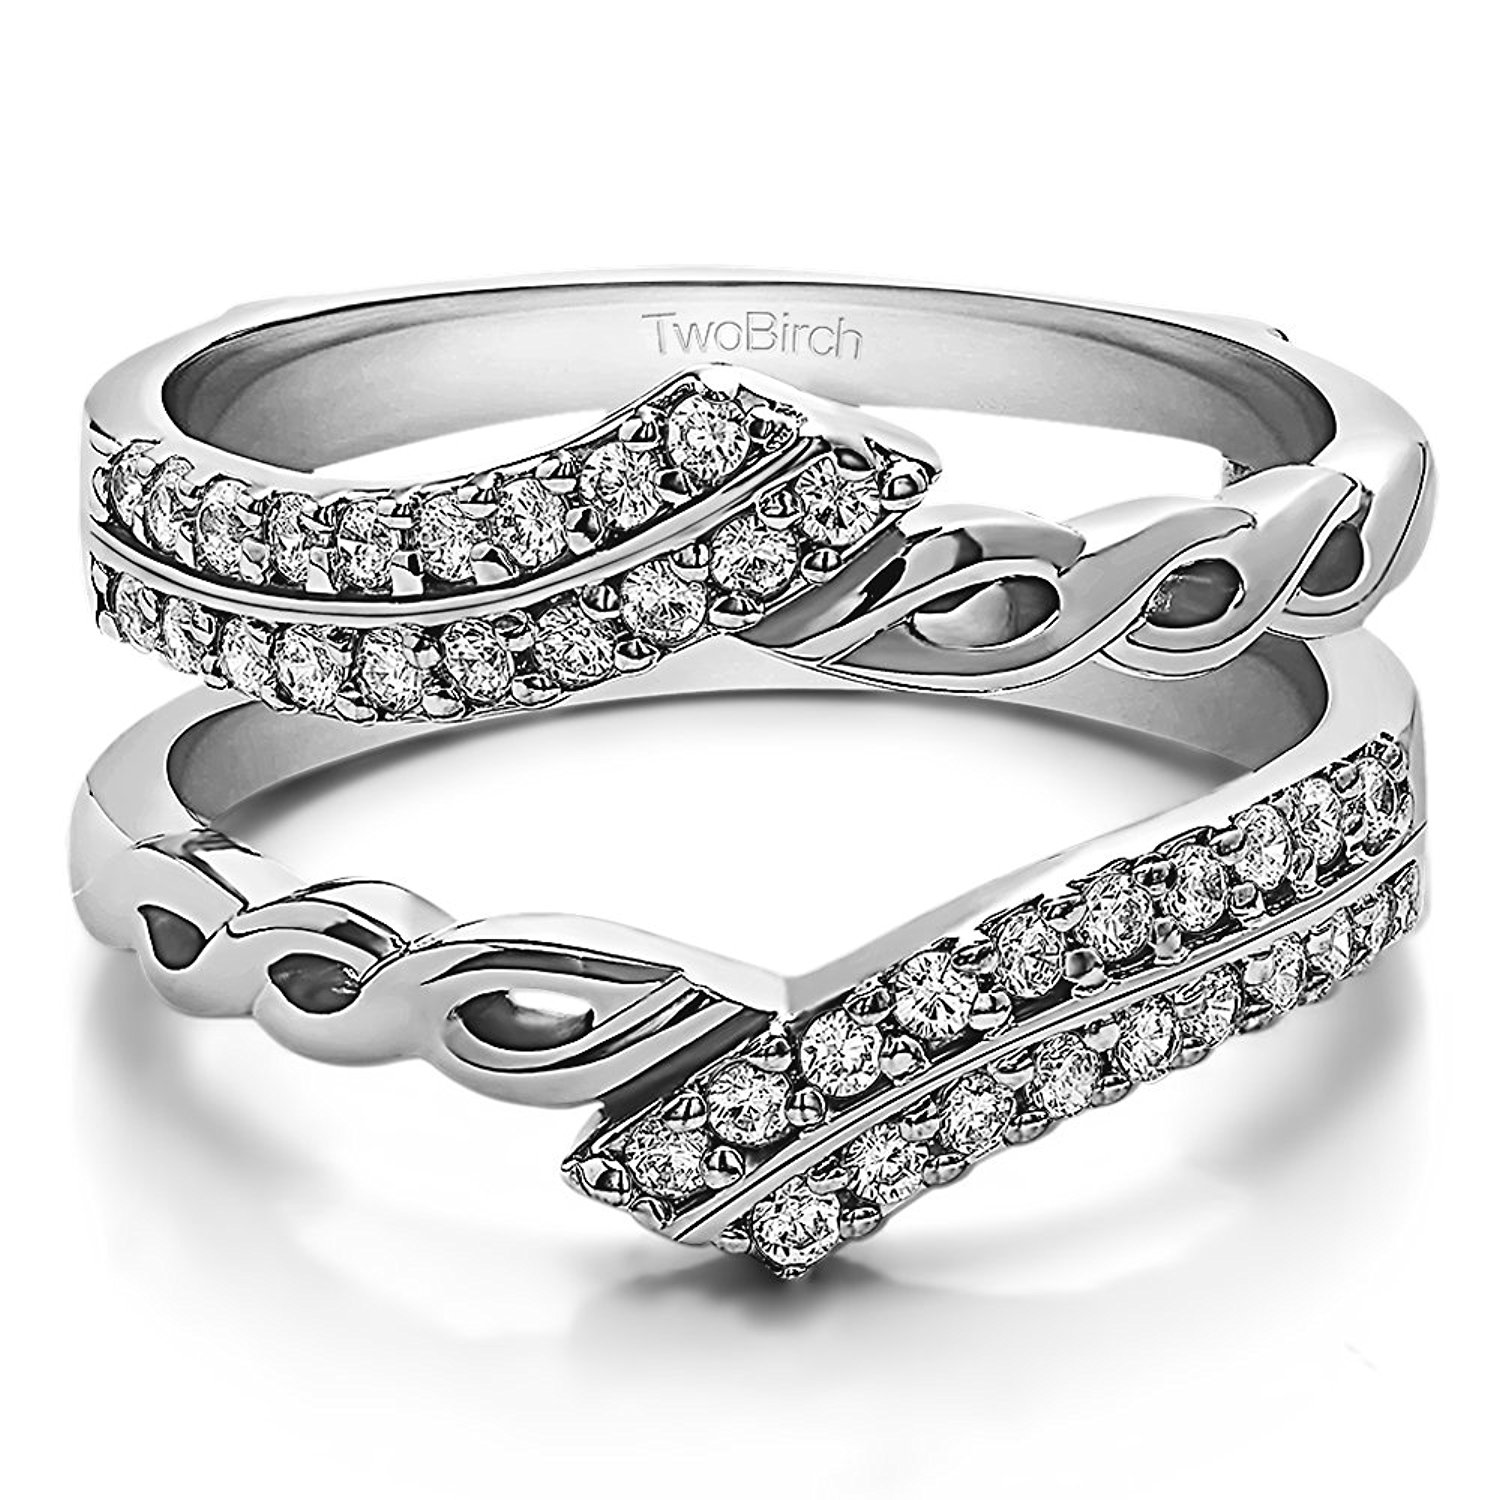 TwoBirch .38CT White Sapphire Double Row Infinity Ring Guard Enhancer 18k White Gold (3/8CT)(Size 3-15,1/4 Sizes)